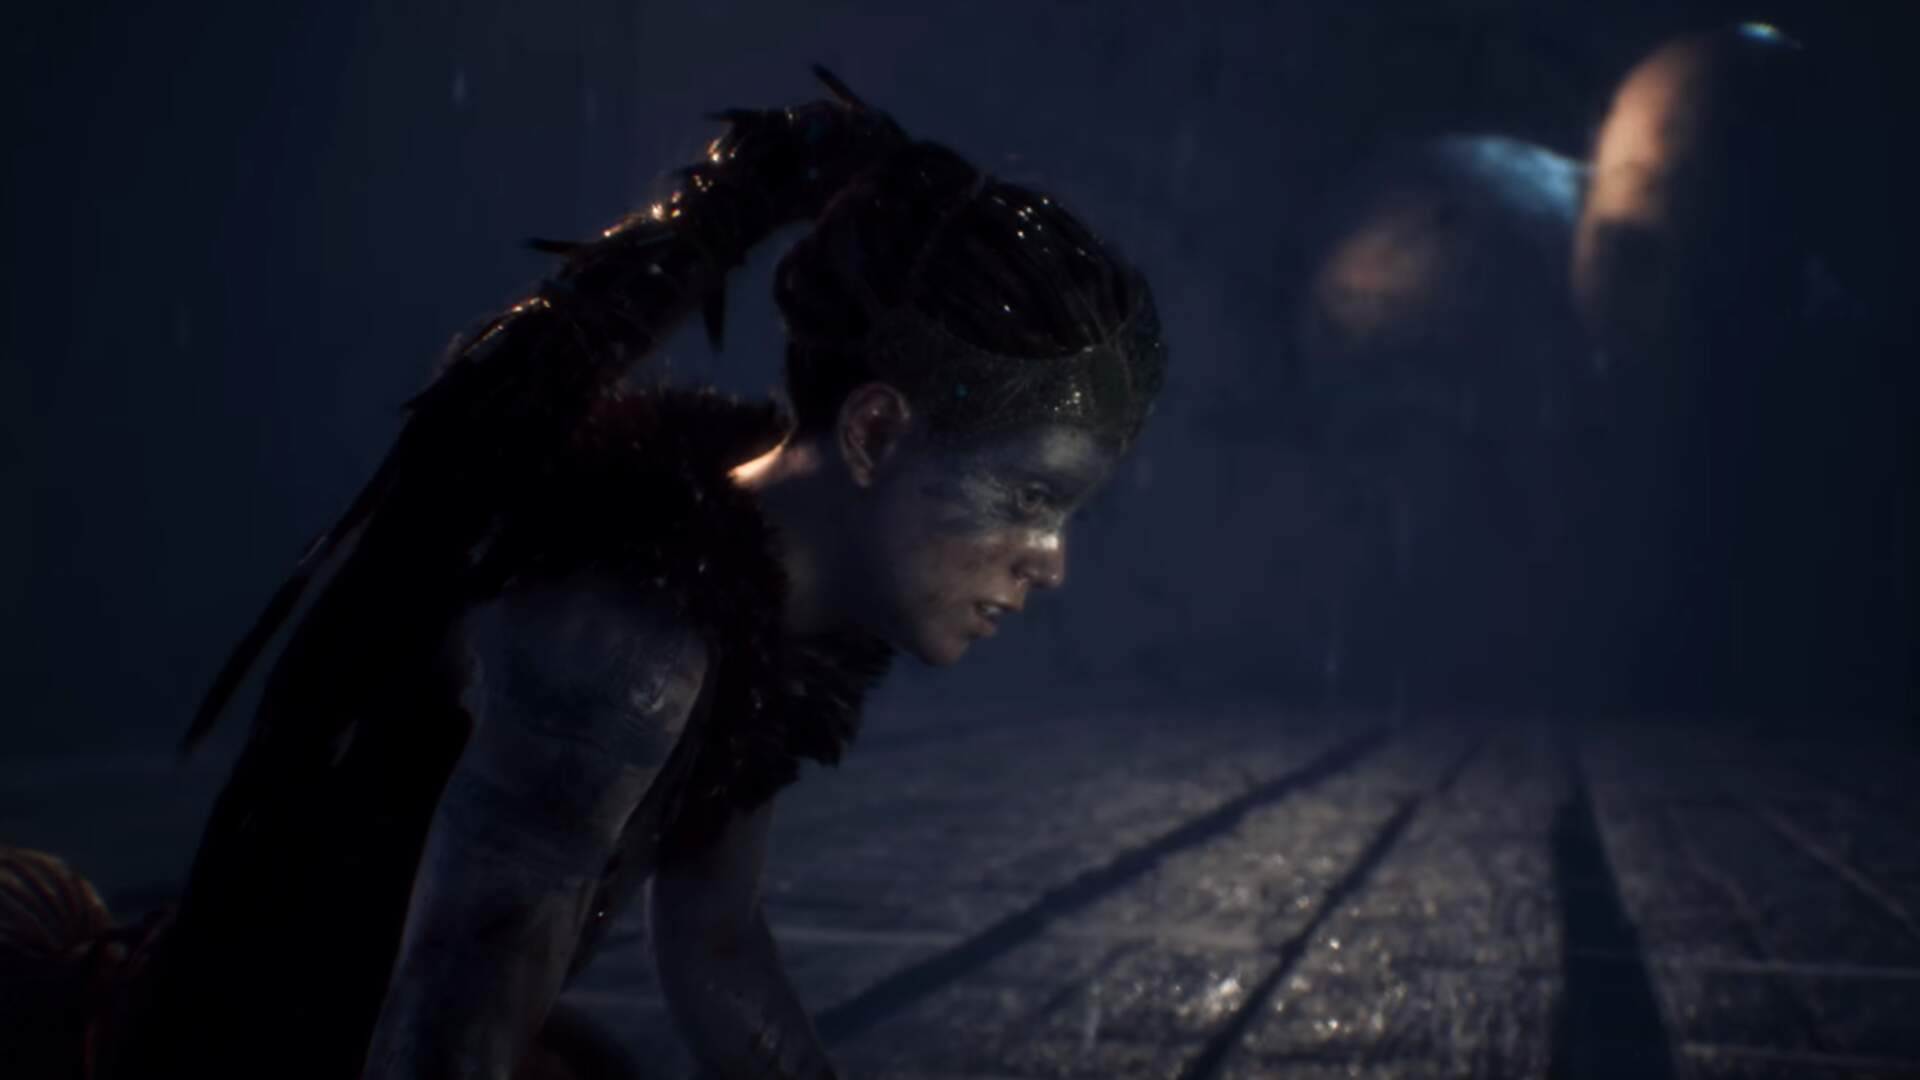 New Trailer for Hellblade: Senua's Sacrifice Makes a Strong Case That Celtic Hel is Just Silent Hill